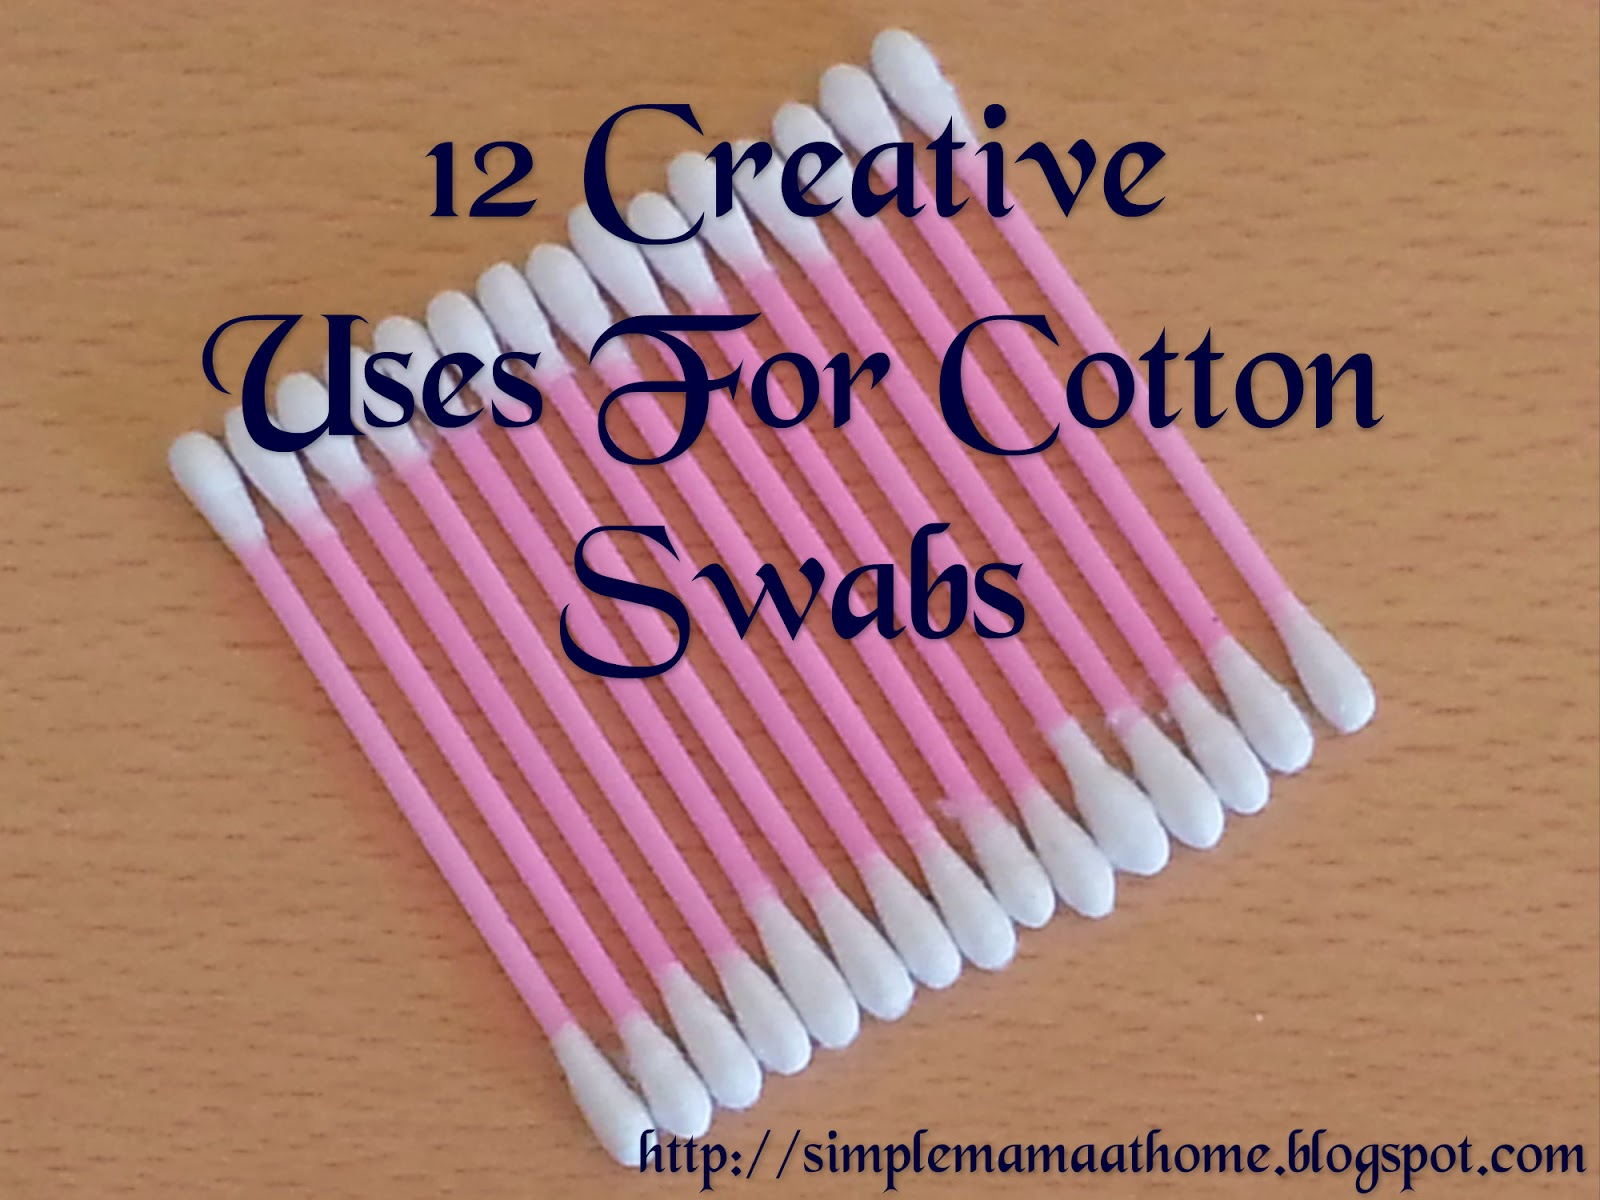 12 Creative Uses For Cotton Swabs